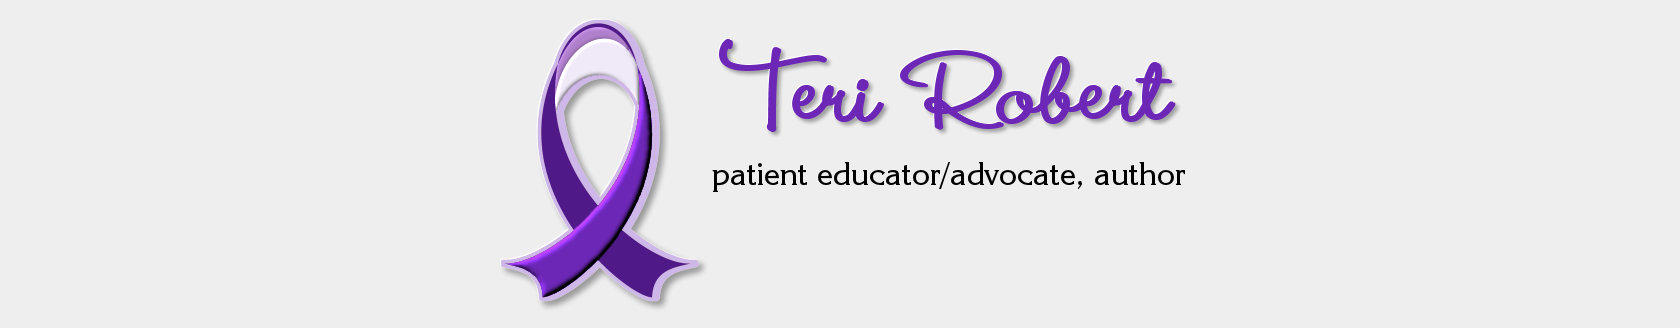 Teri Robert, patient educator and advocate